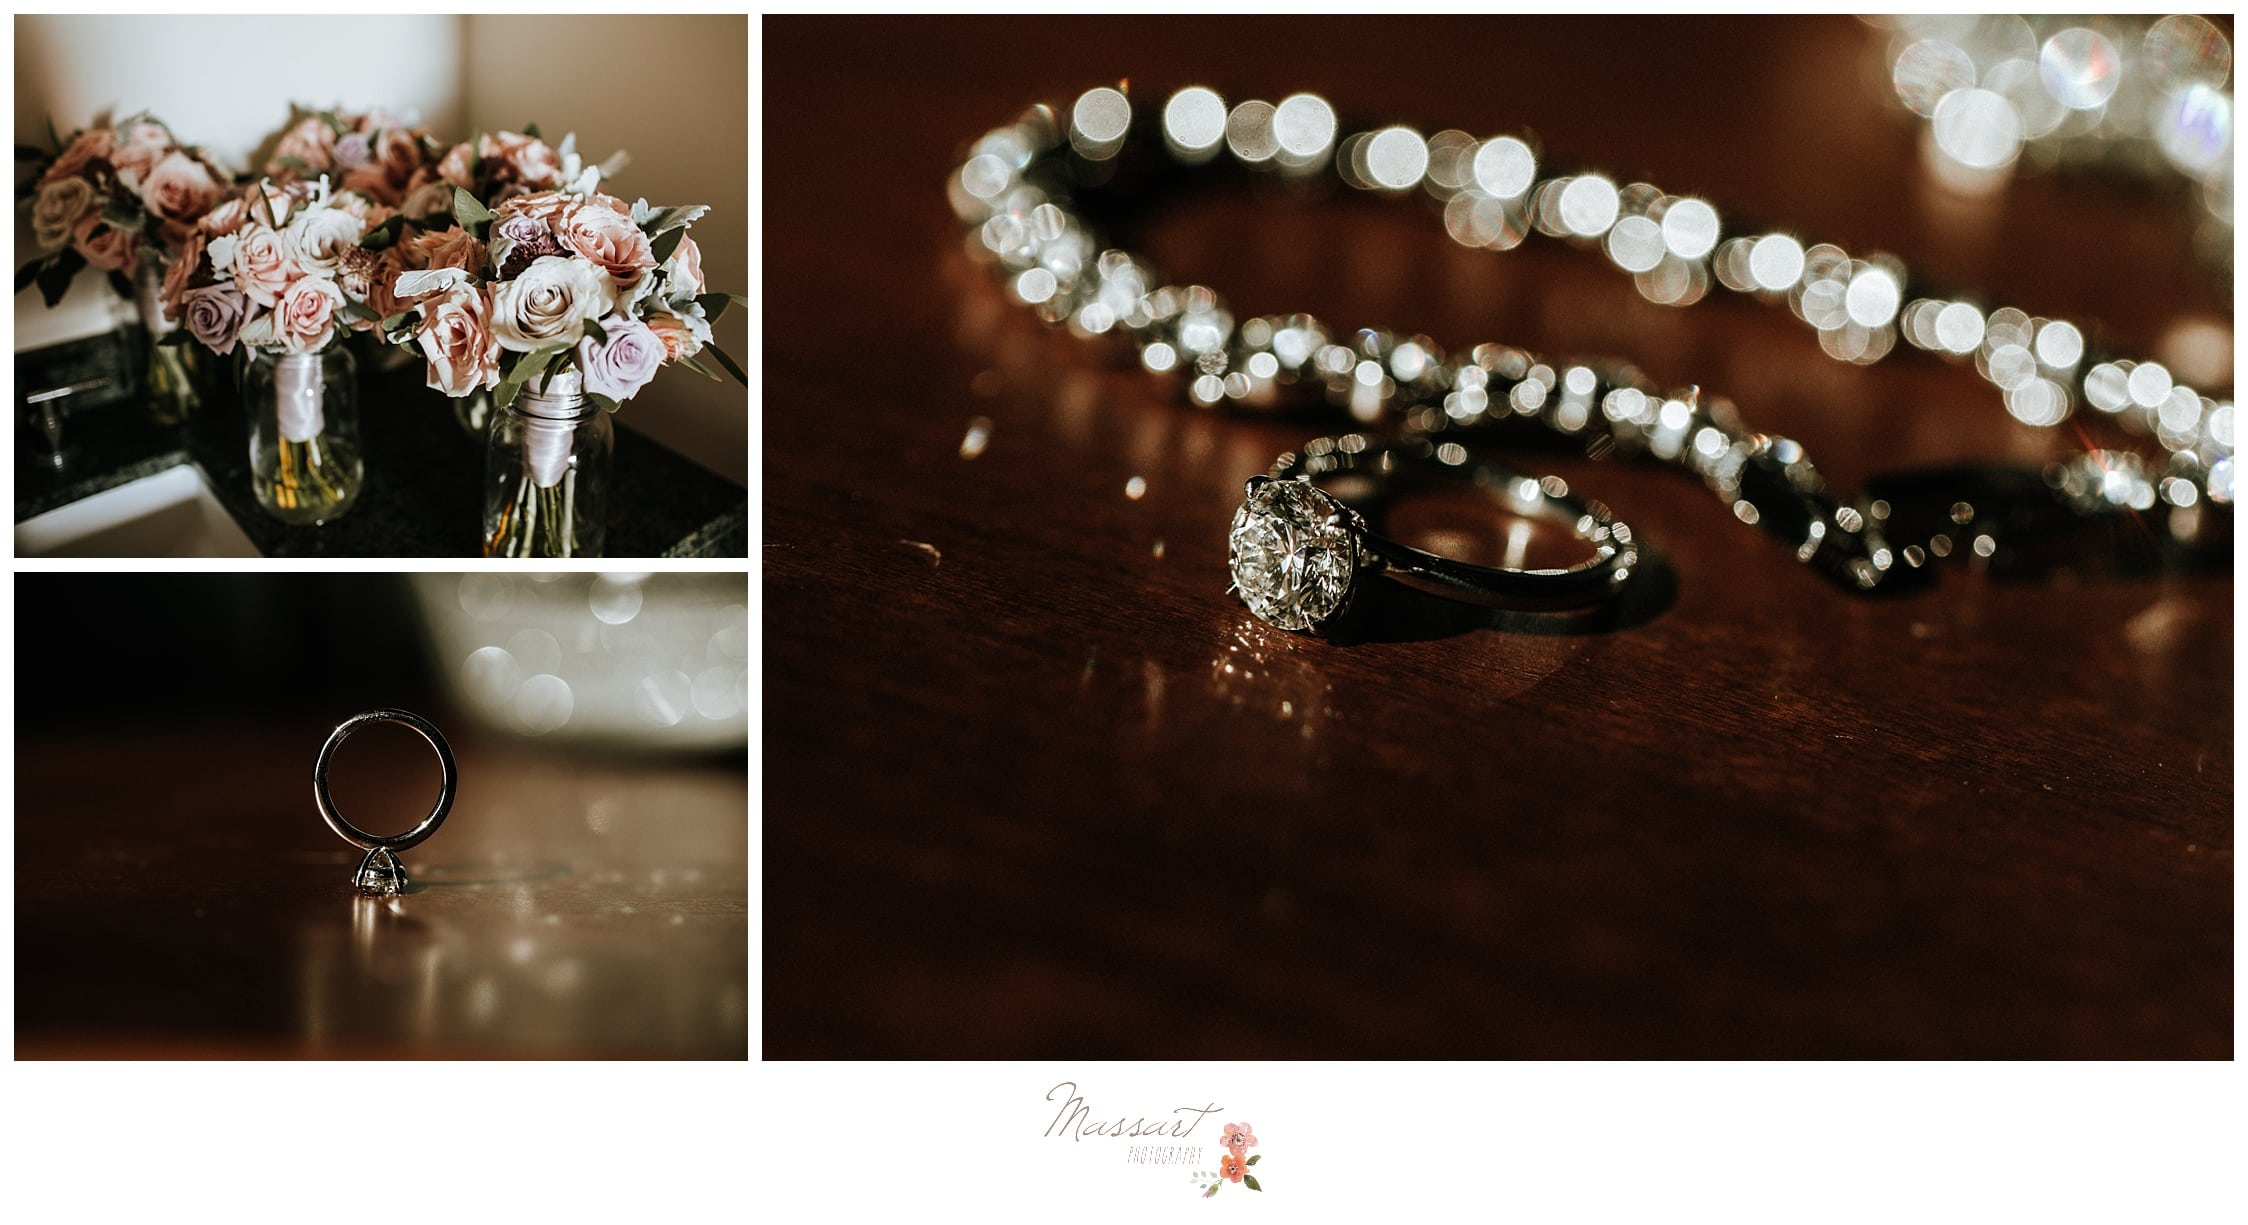 Bride's jewelry and her wedding bouquet before the wedding ceremony photographed by Massart Photography Rhode Island